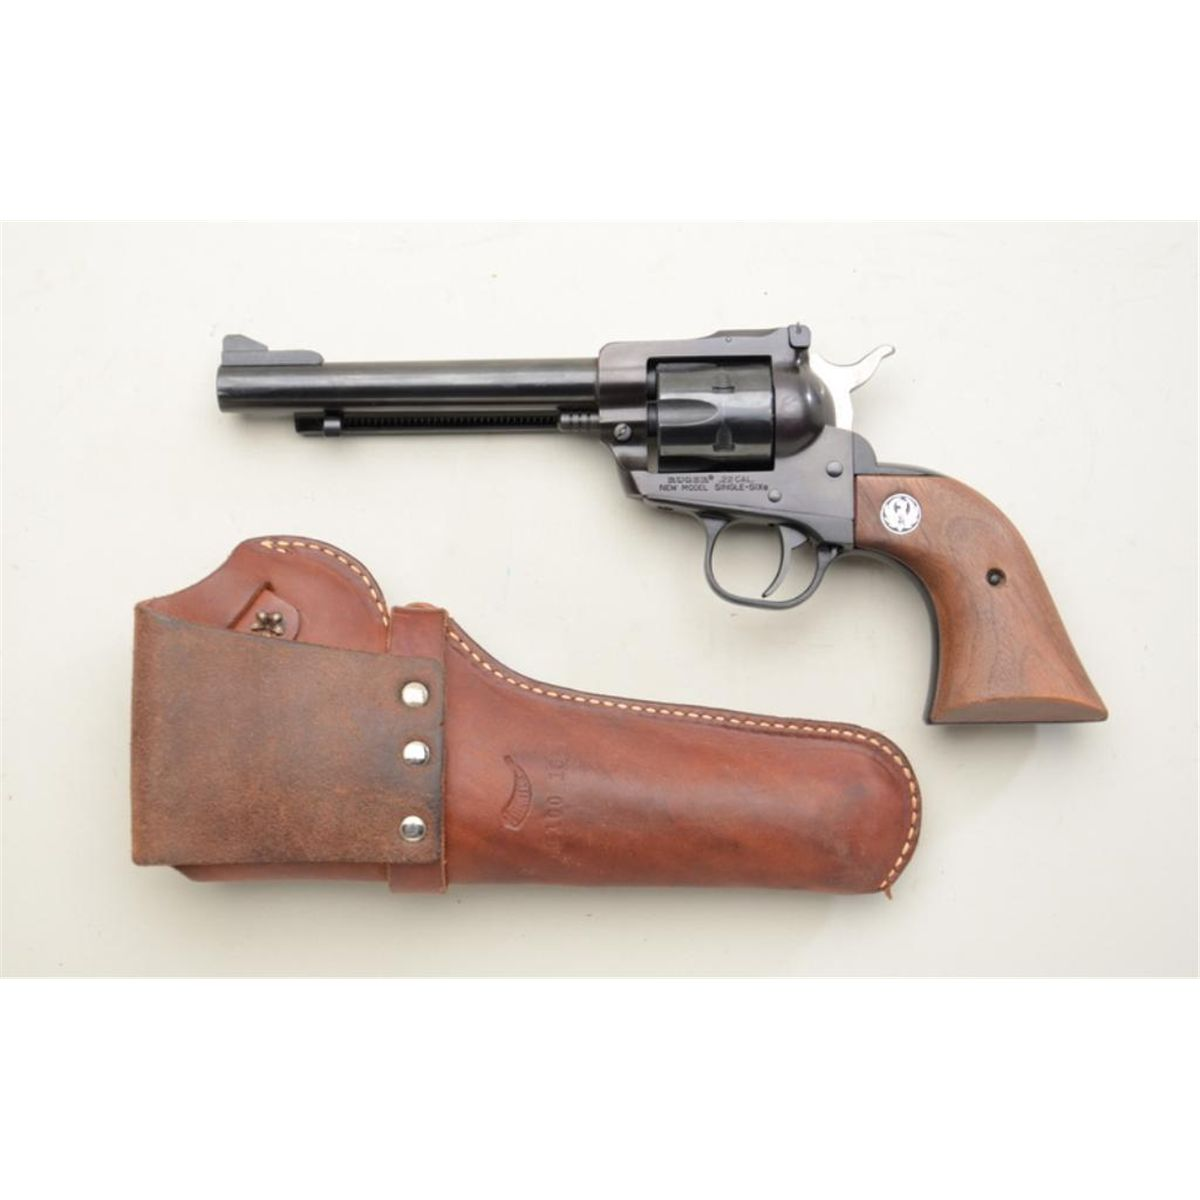 """black singles in sixes The 22 magnum cartridge was introduced by winchester in 1959 ruger introduced its single-six single action revolver in 22 """"magnum only"""" around june of that same year the """"magnum only."""